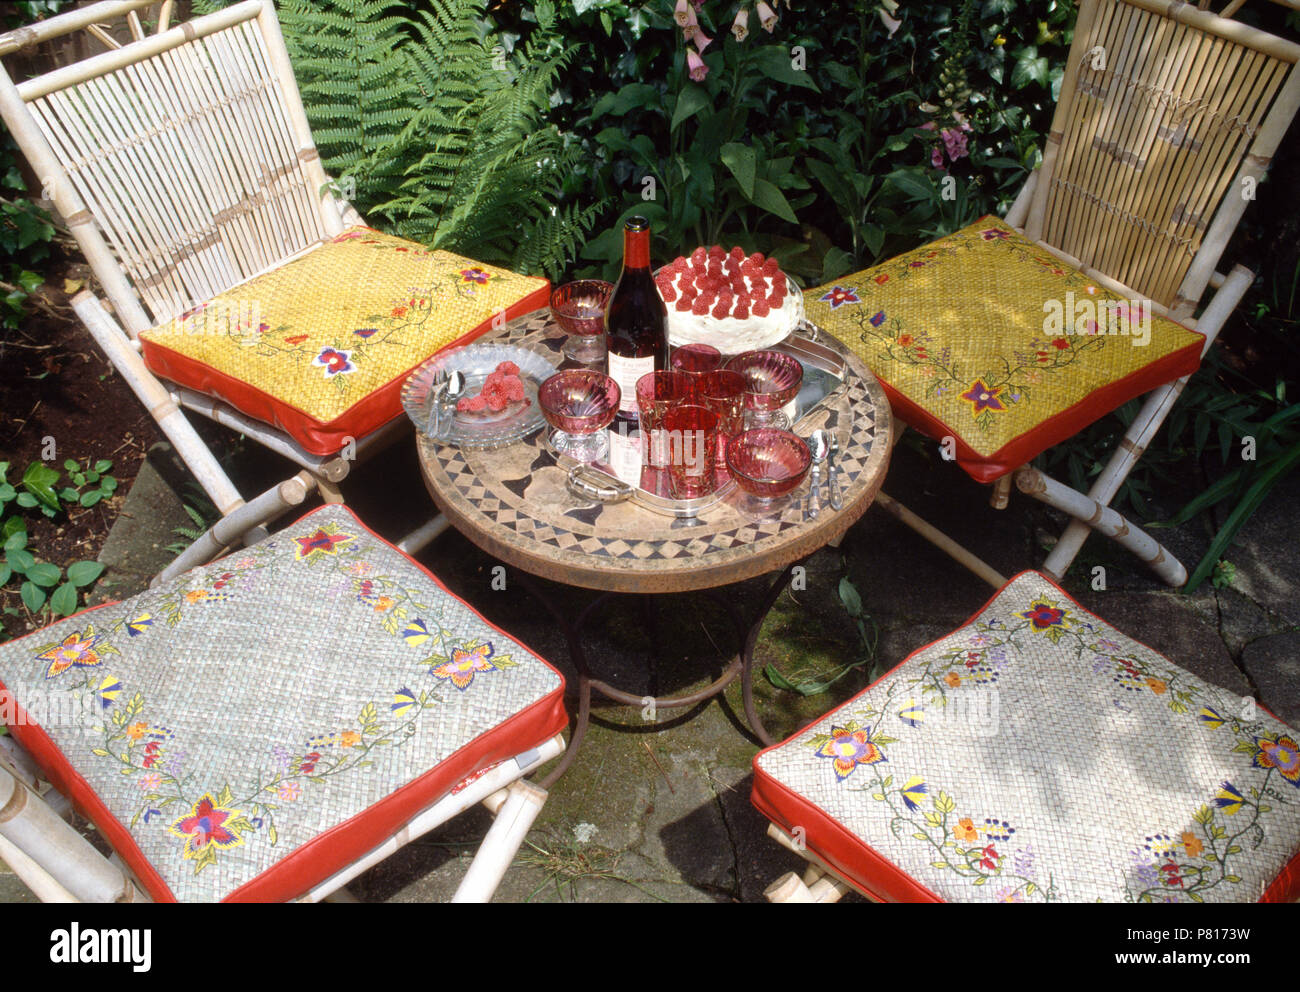 Floral Tapestry Box Cushions On White Bamboo Chairs On Patio With Cranberry  Glass On Small Mosaic Table